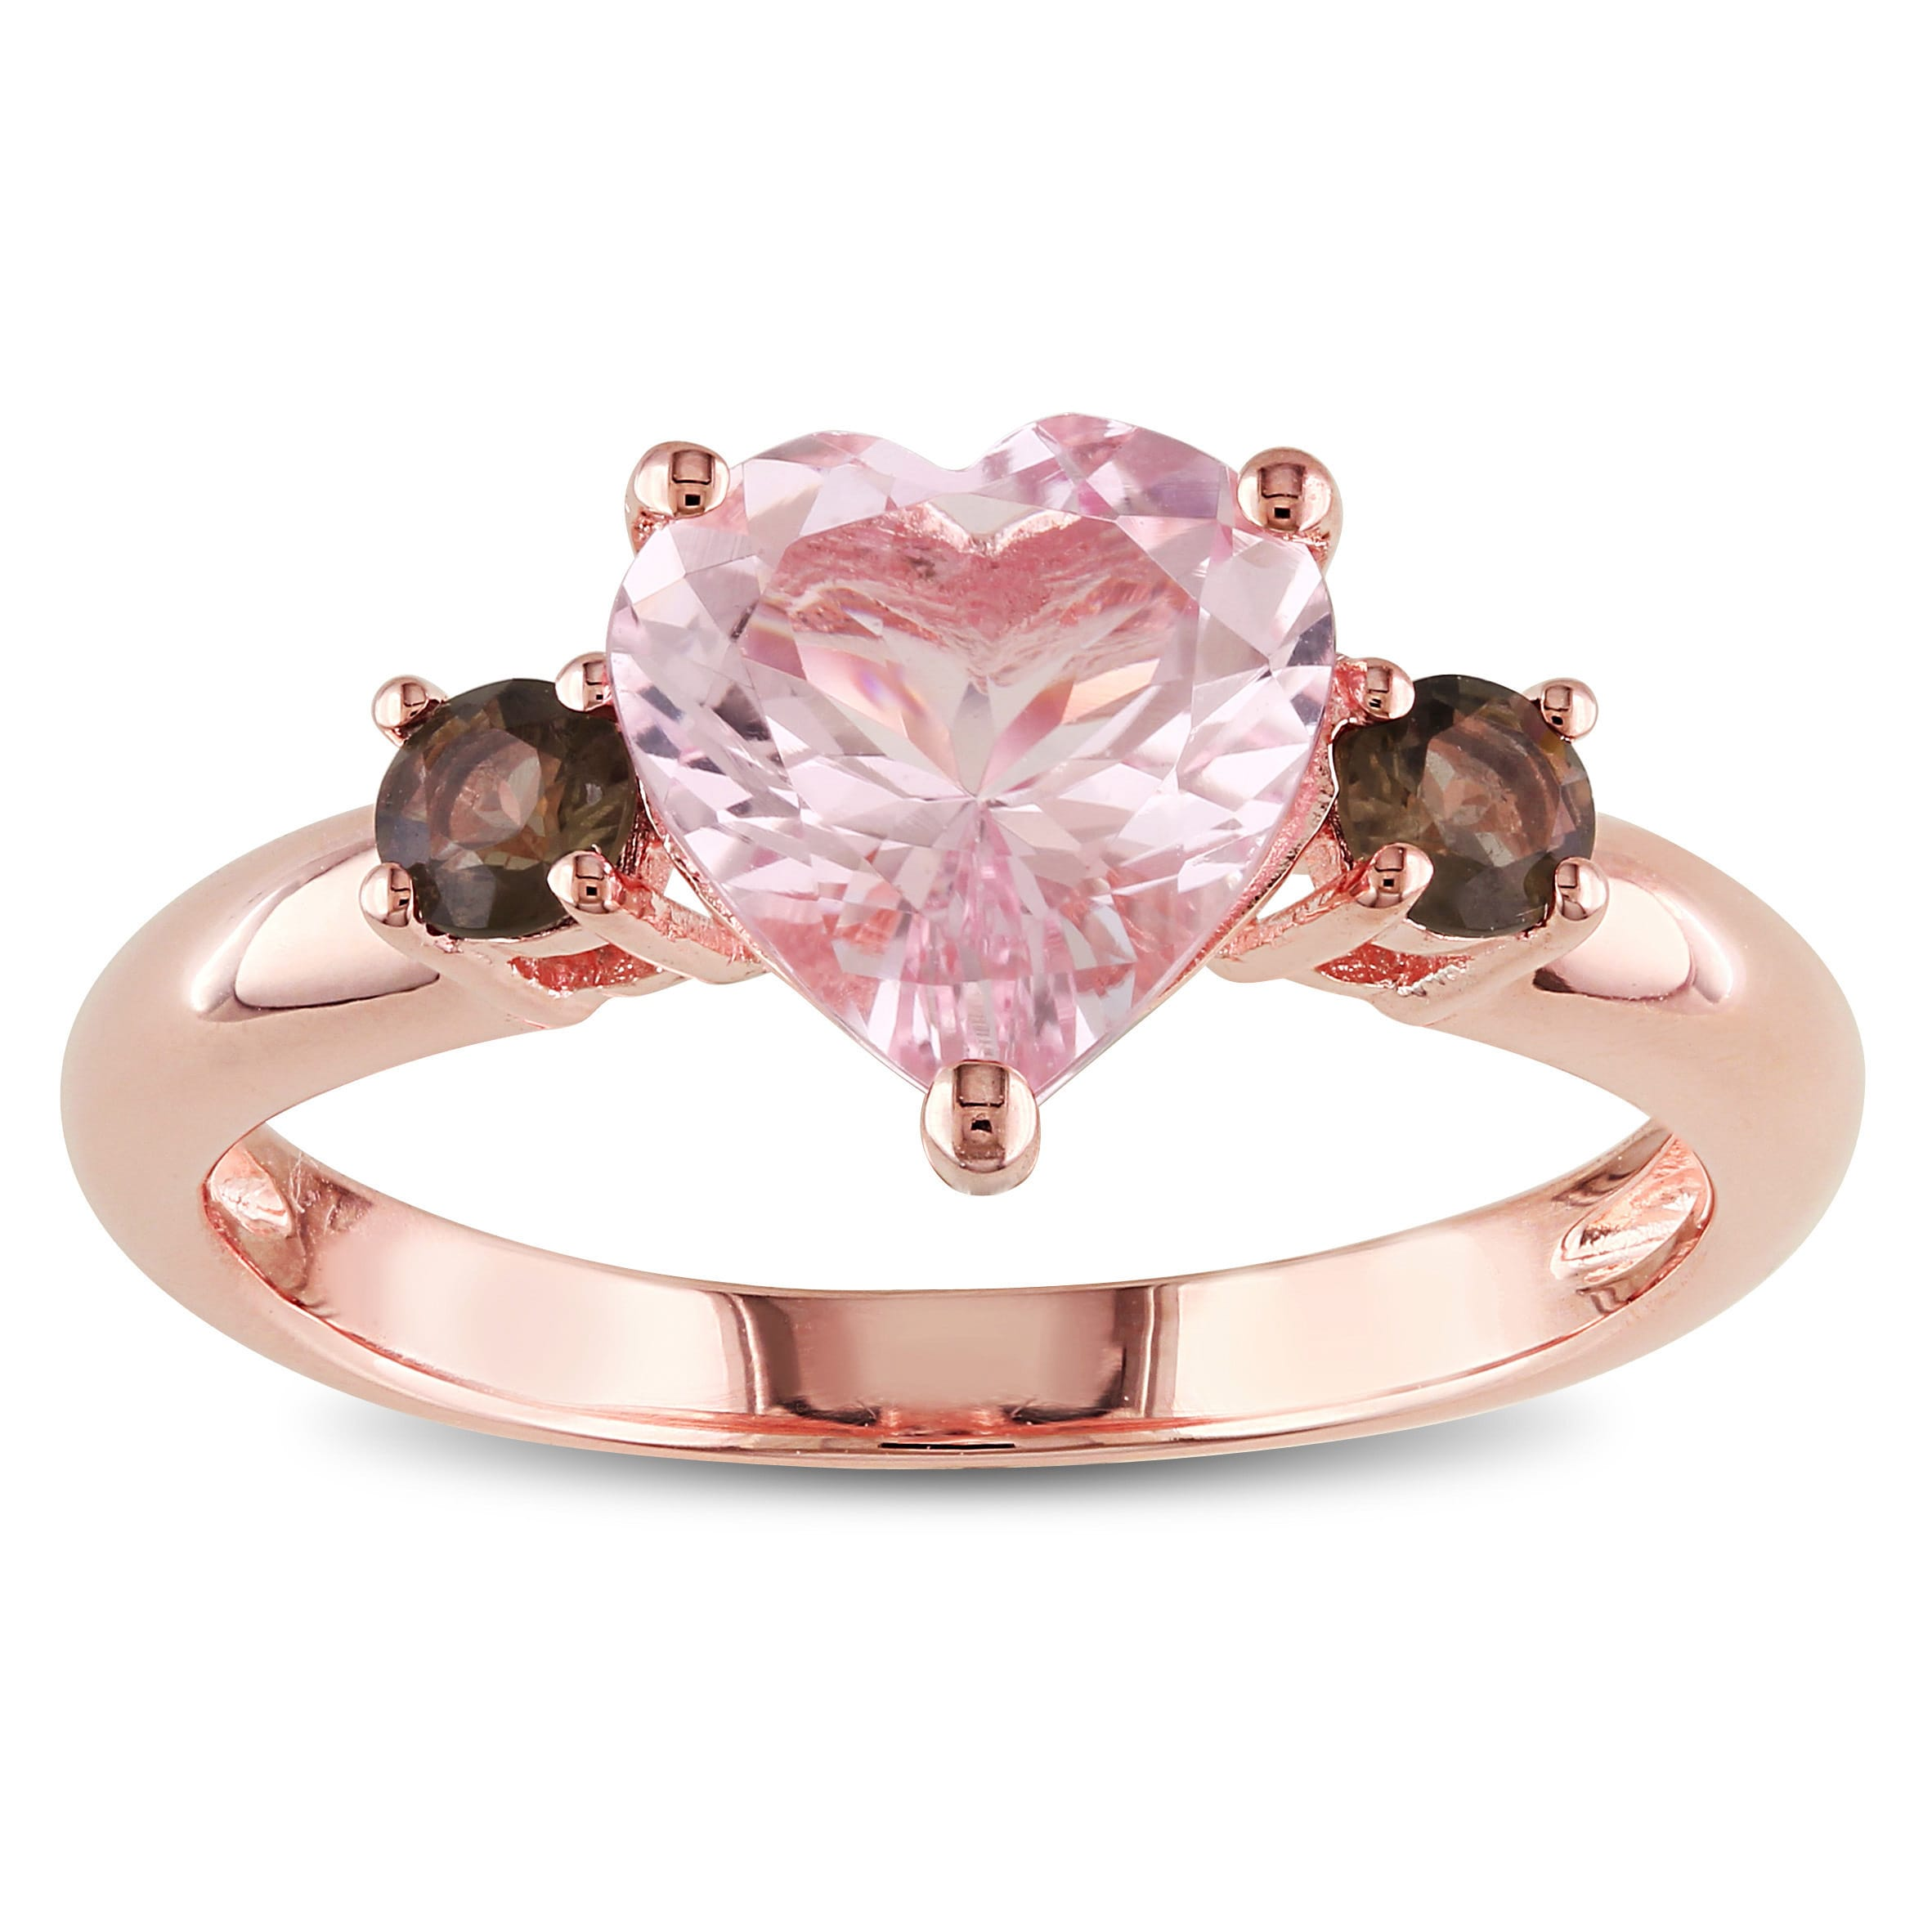 Morganite, Champagne Jewelry For Less   Overstock